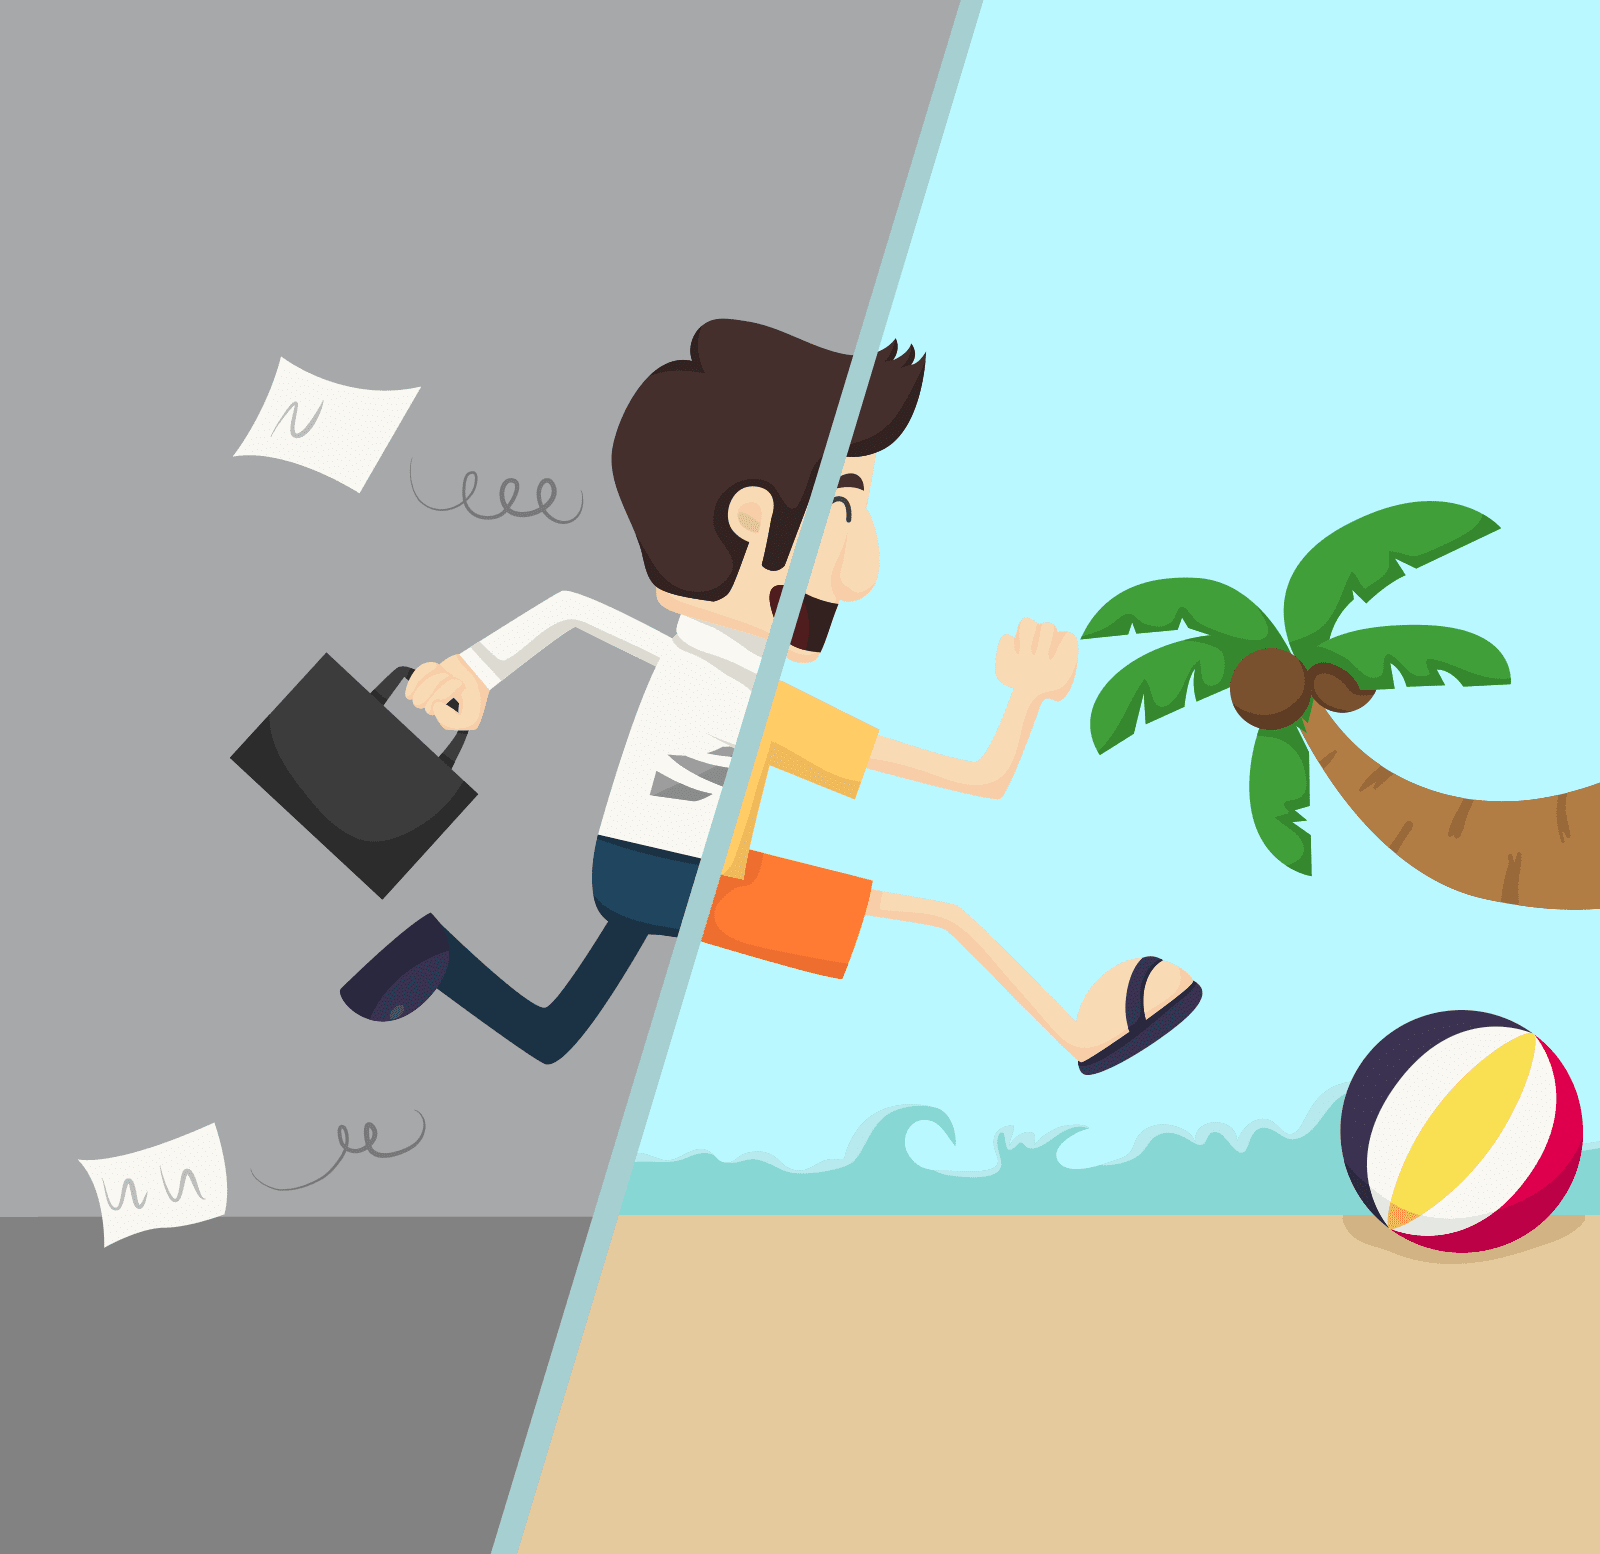 5 Simple Steps: Reduce Workload for When You Return from Holiday